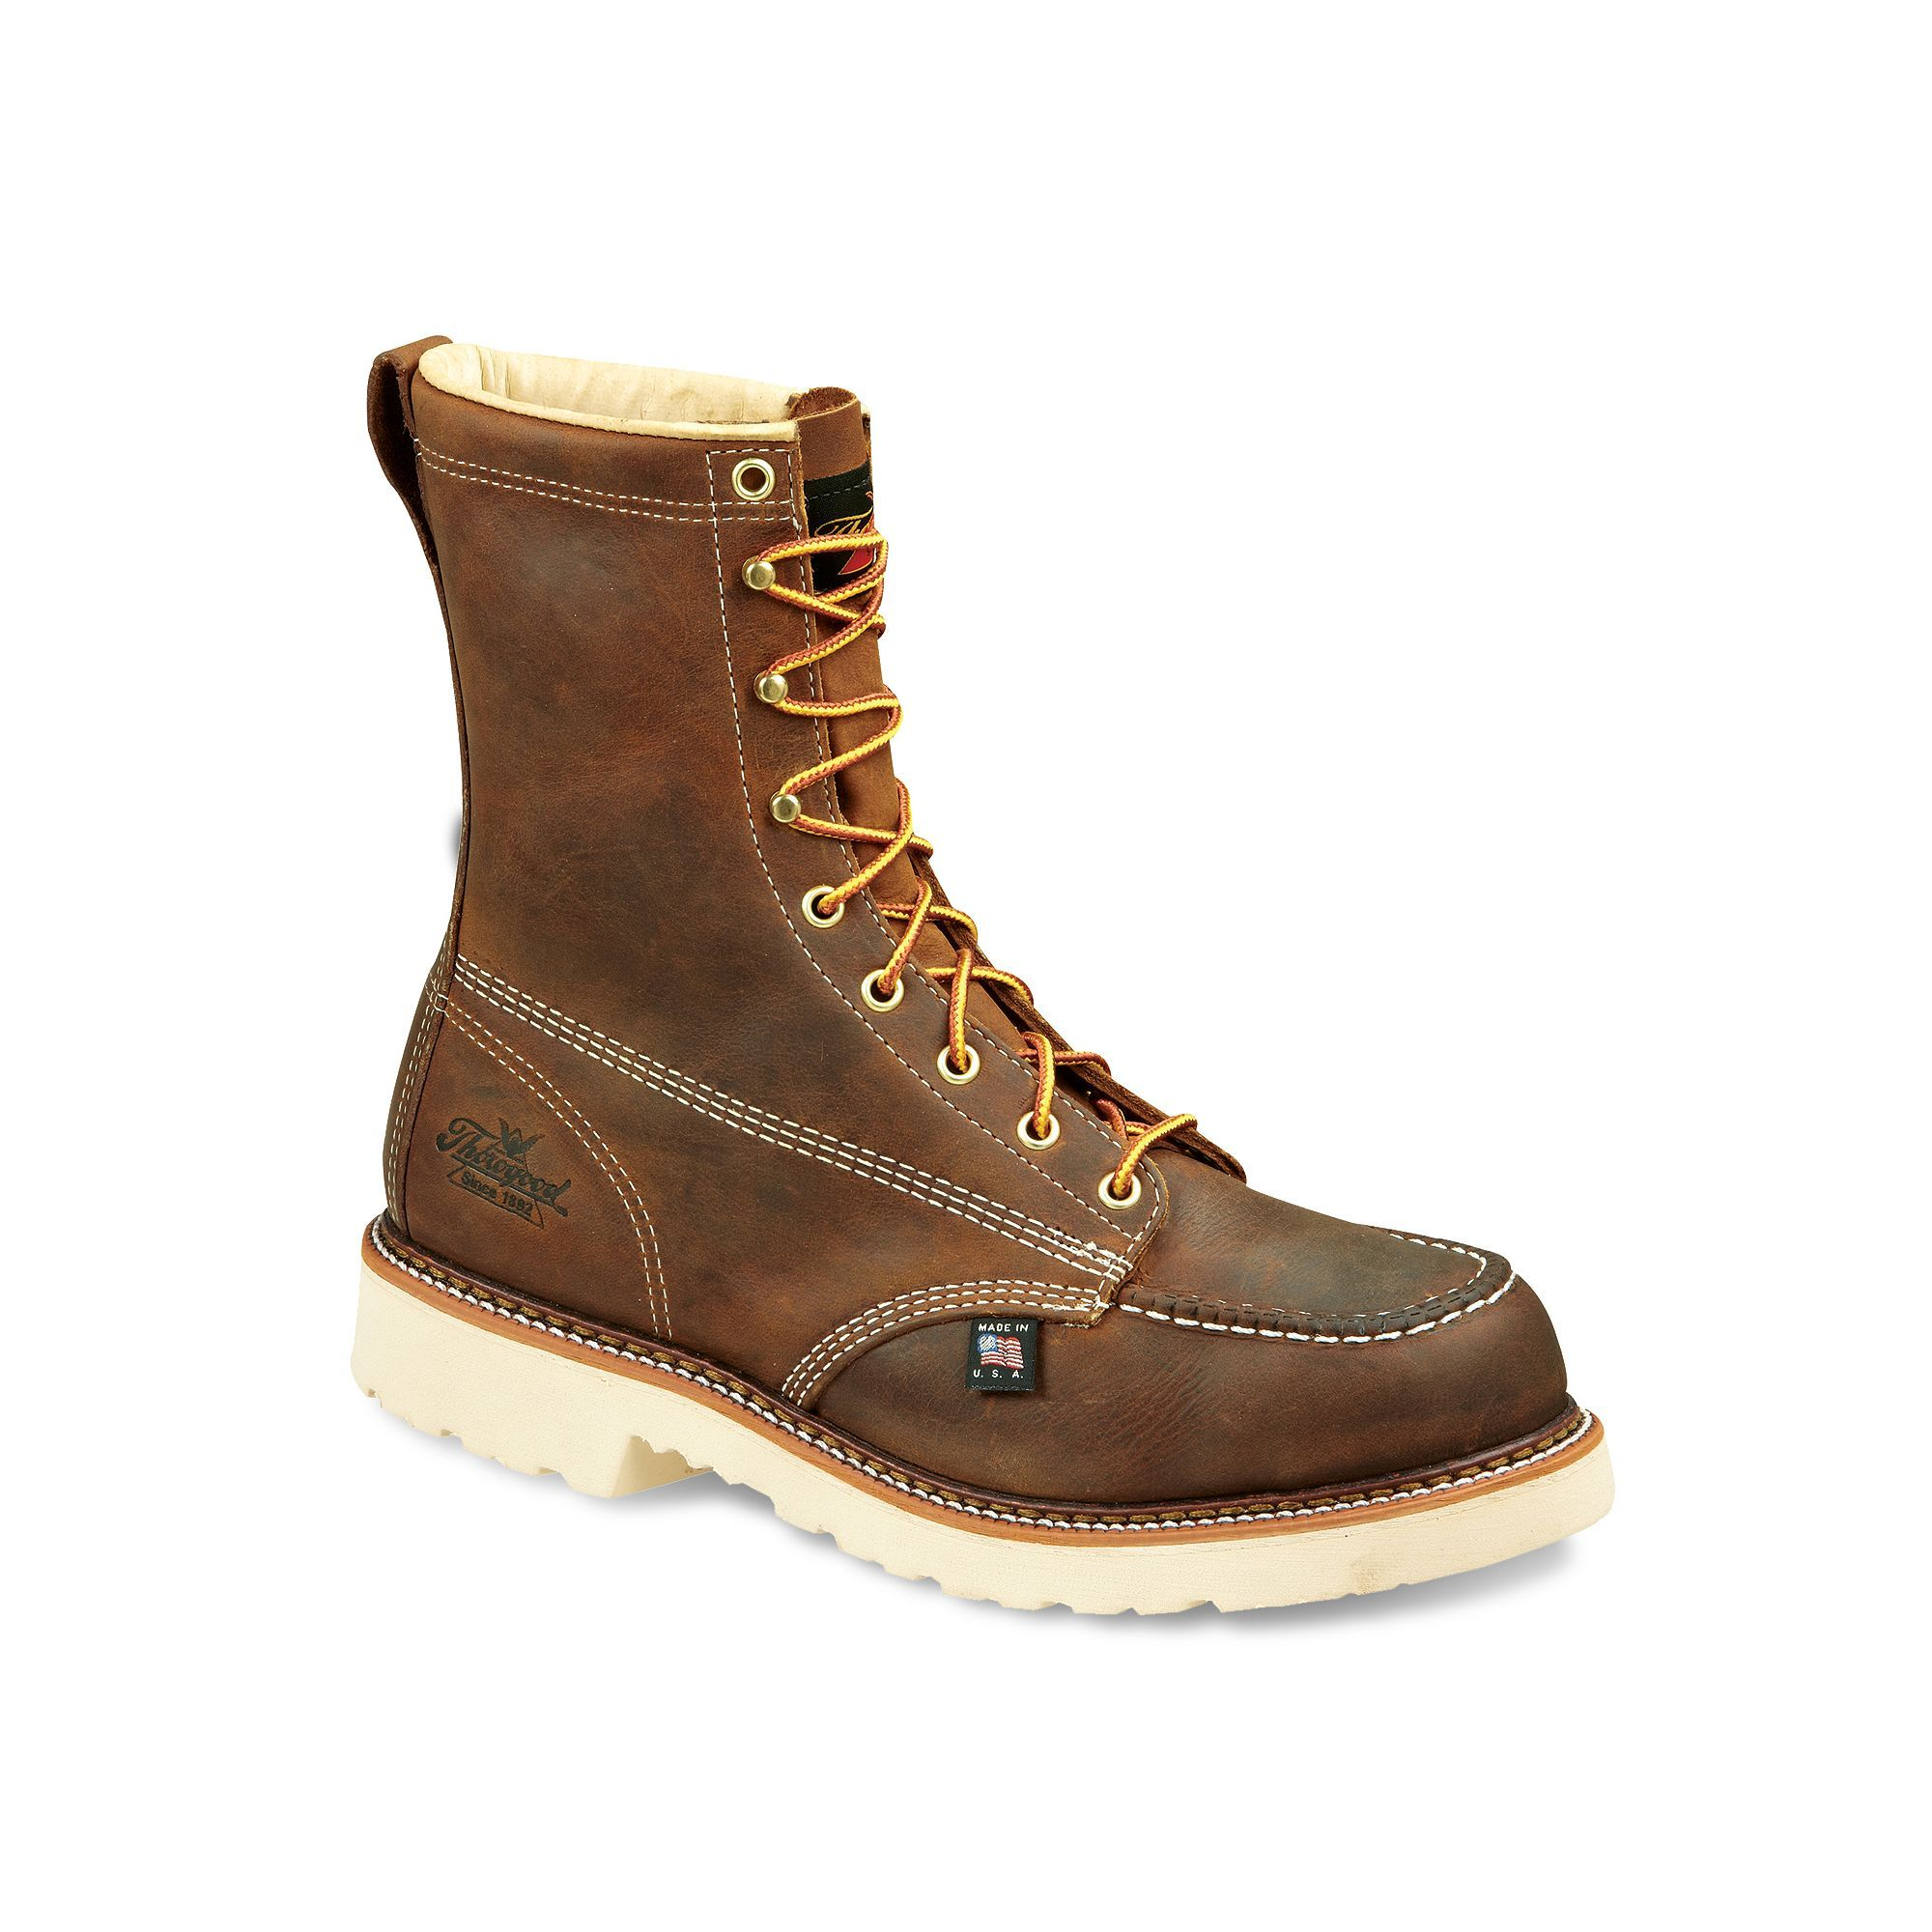 Thorogood American Heritage ... Men's Mid-Calf Steel-Toe Work Boots